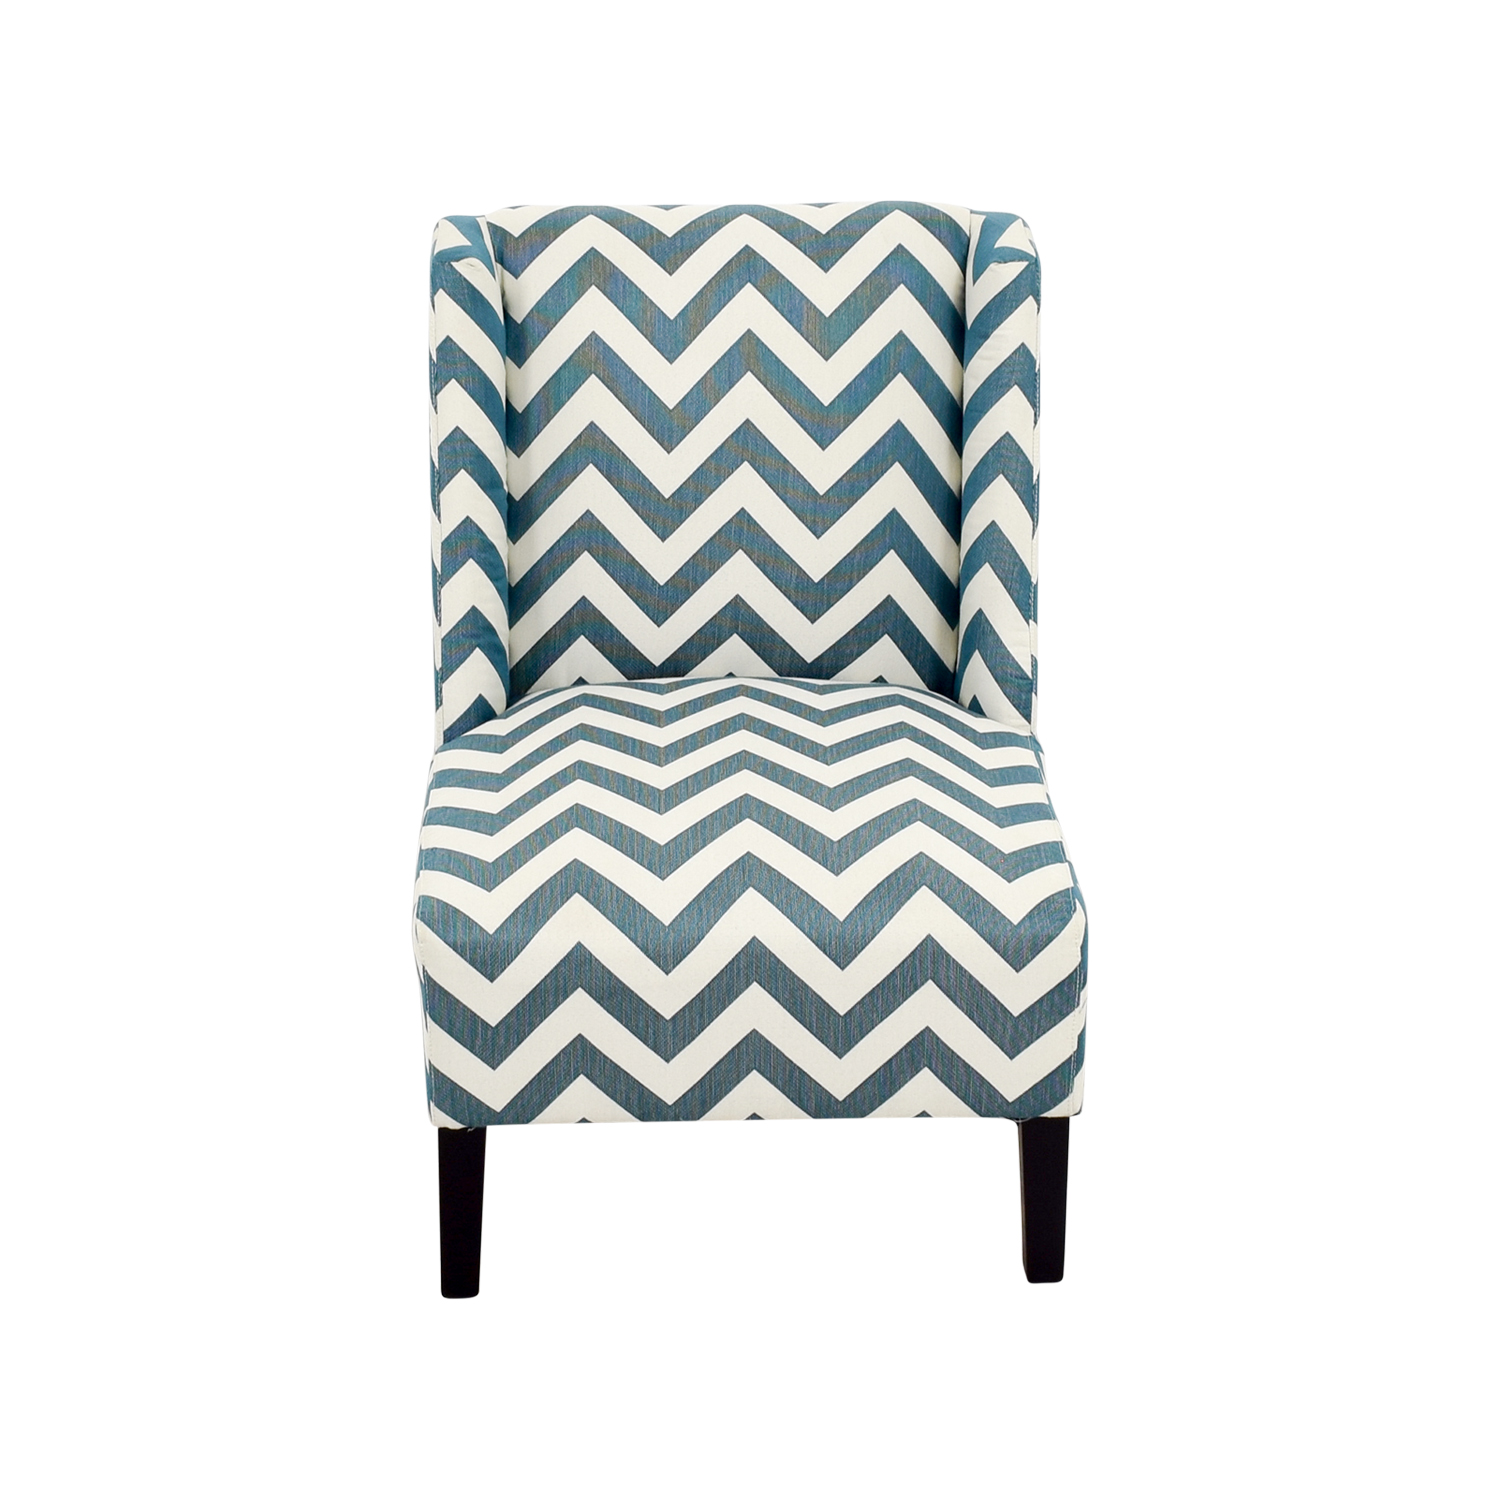 Pier 1 Imports Owen Wing Chair sale